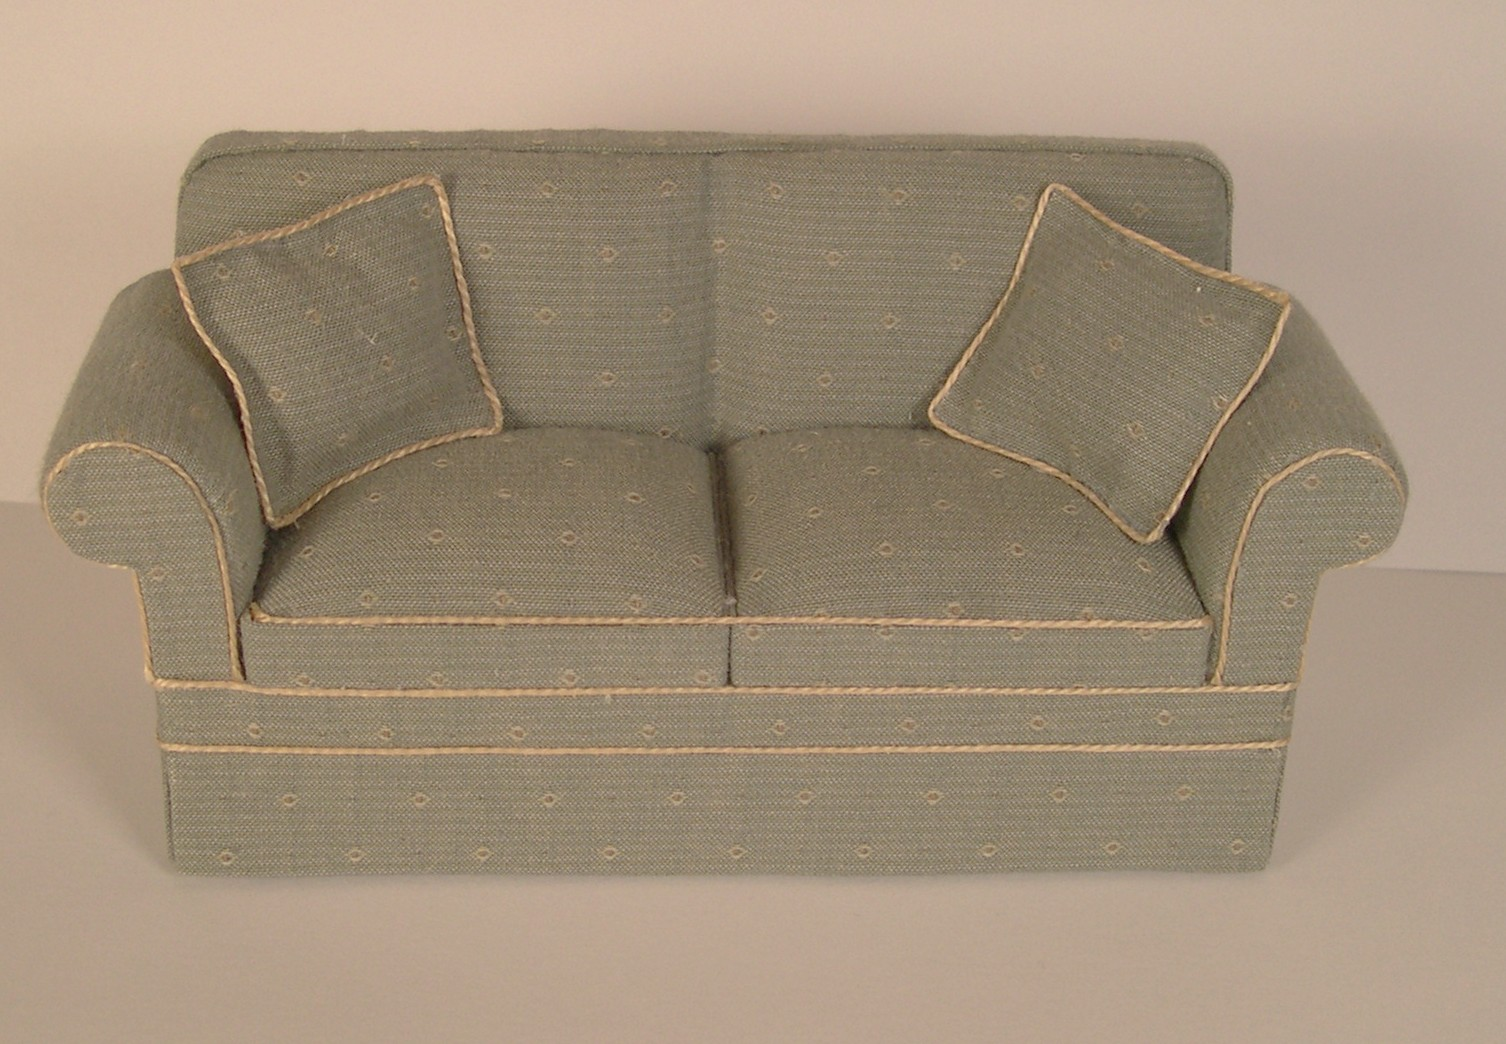 Slipcovers for Cushions | Sofa Slipcovers with Separate Cushion Covers | T Cushion Sofa Slipcover